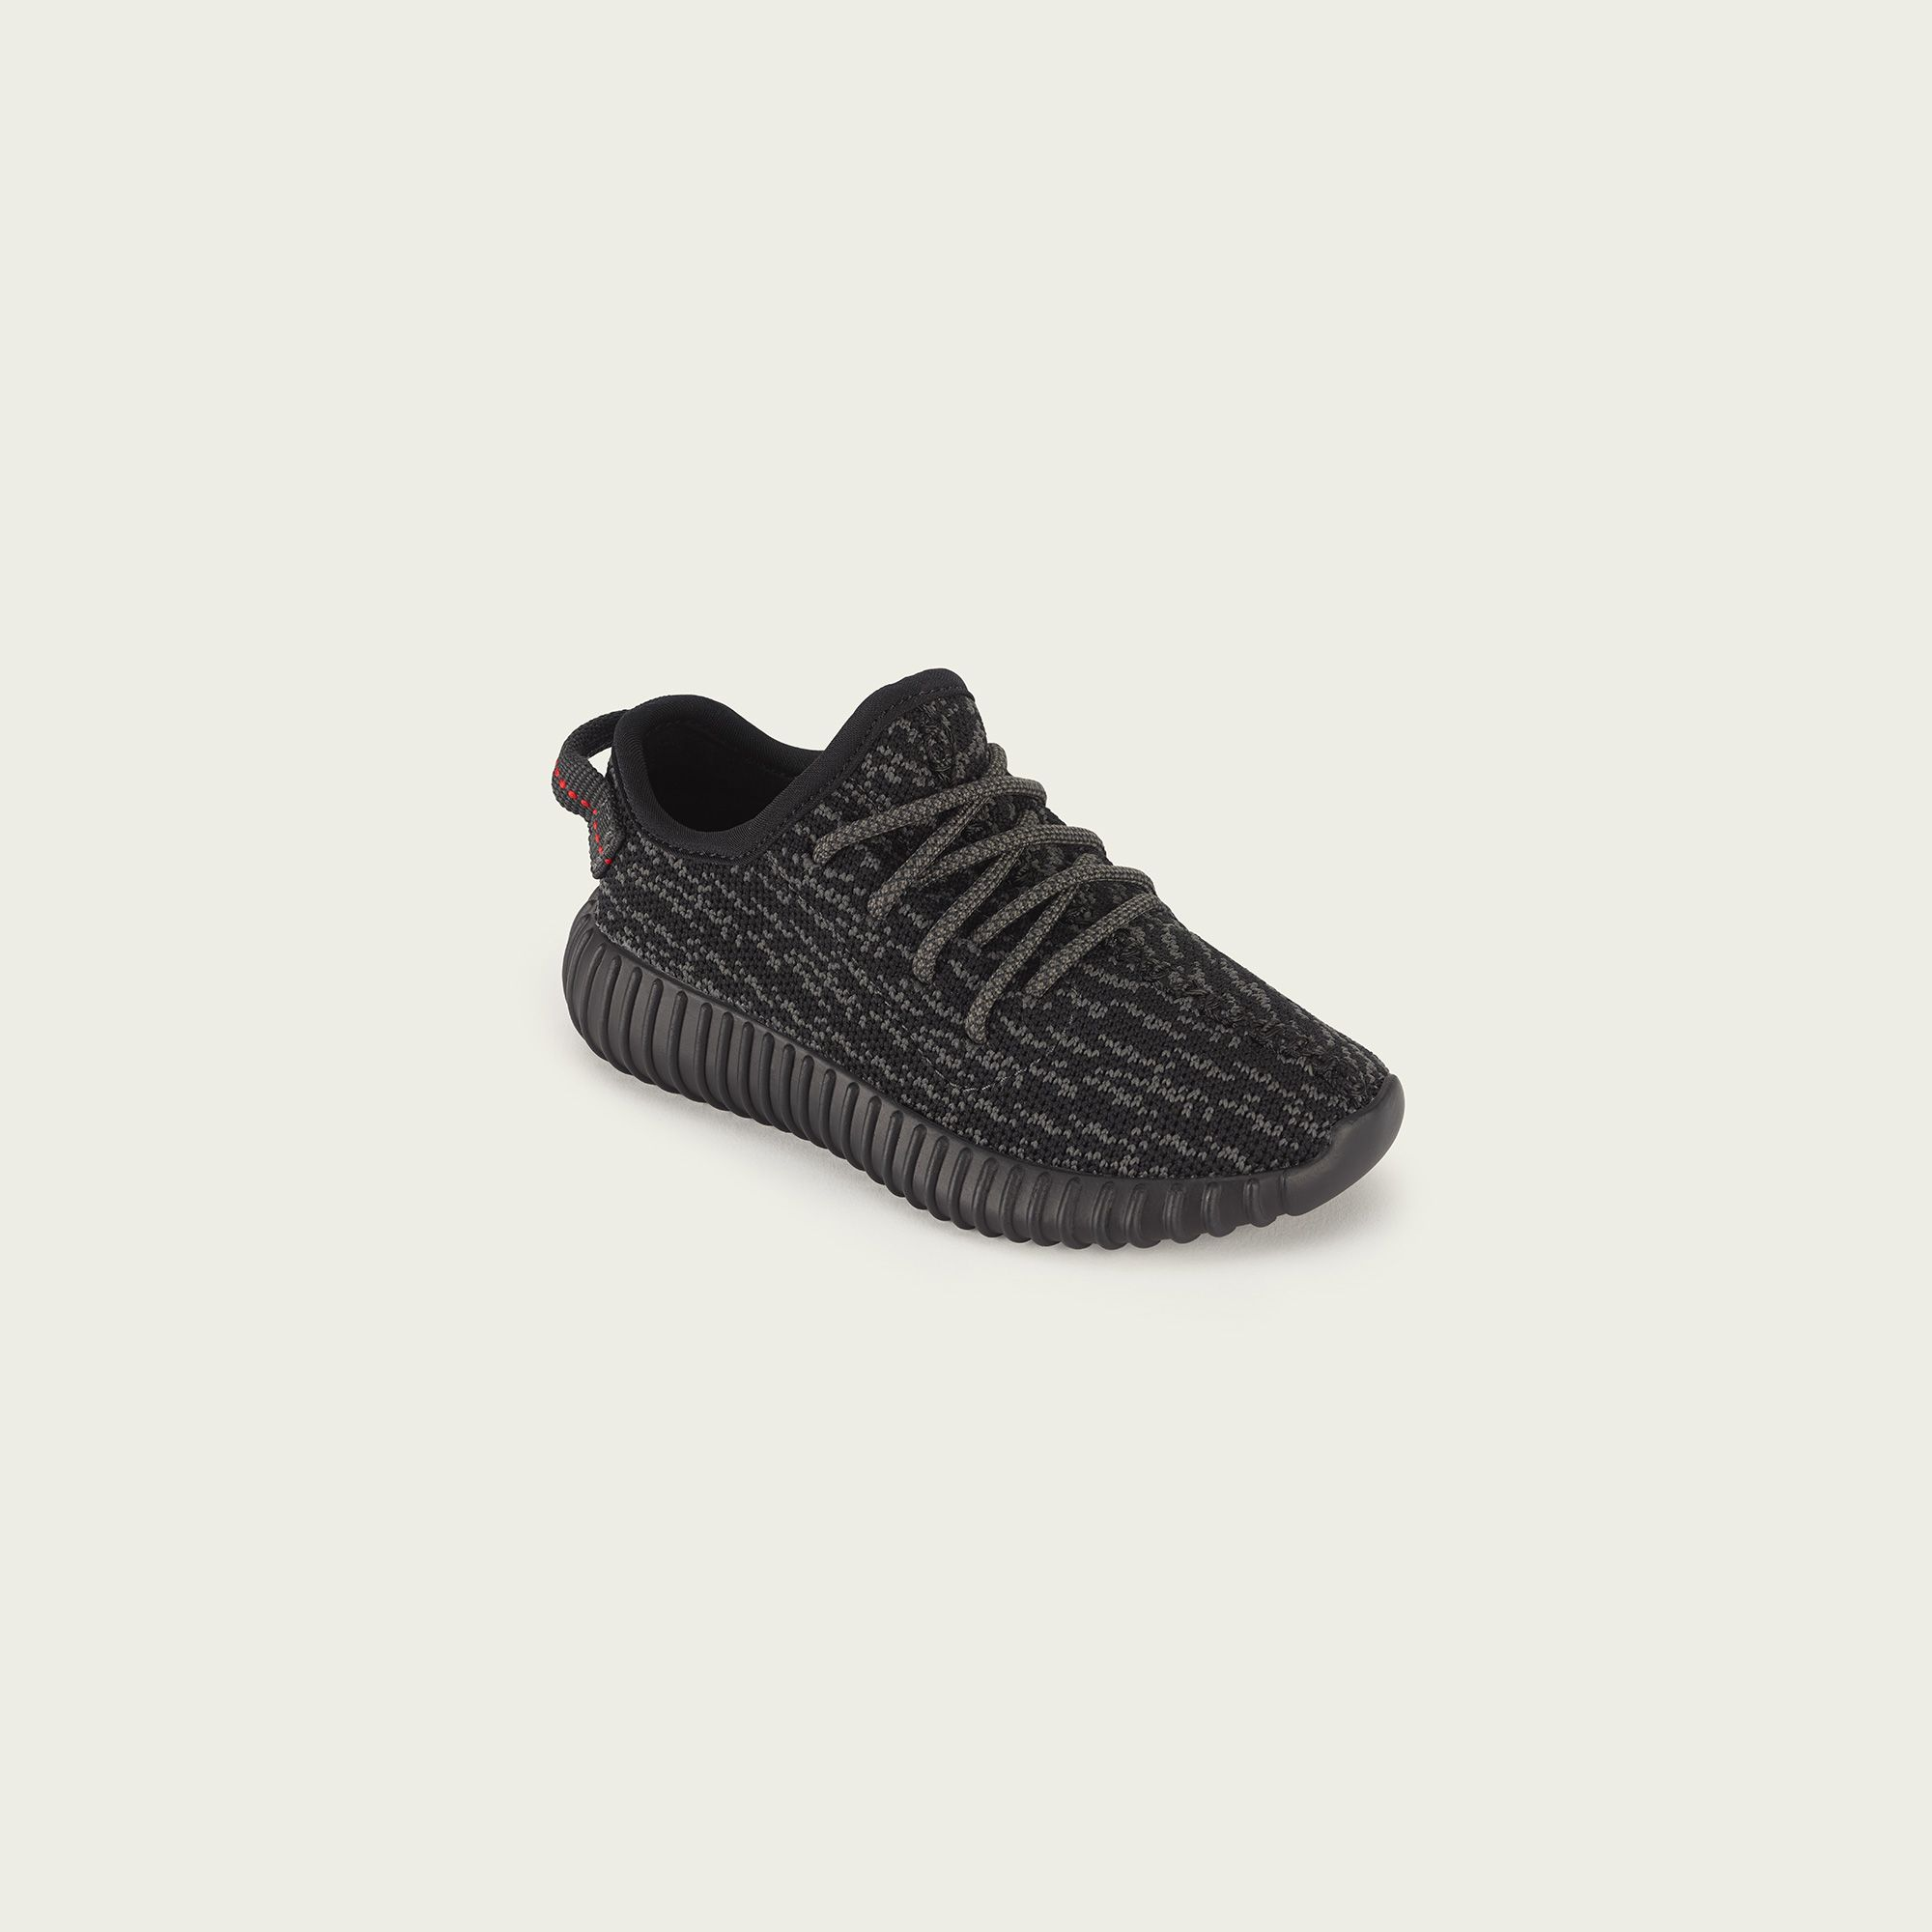 authentic yeezy boost 350 turtle dove adidas superstar big kids black and white